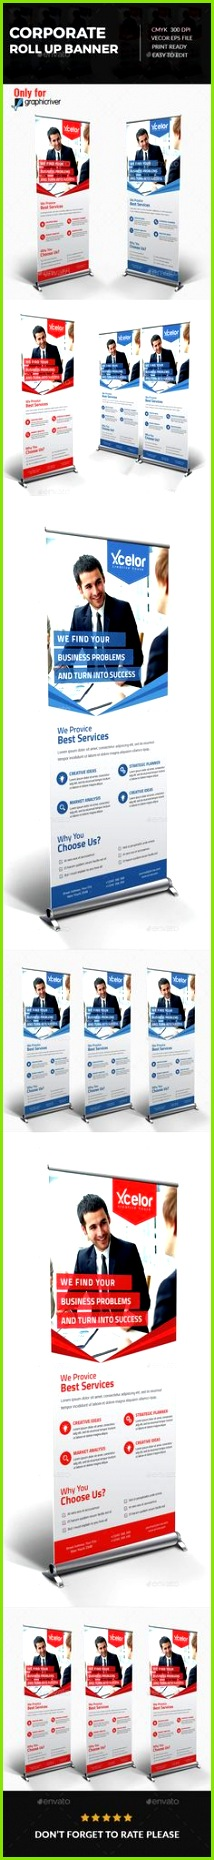 Corporate Rollup Banner roll up banners roll up Download s